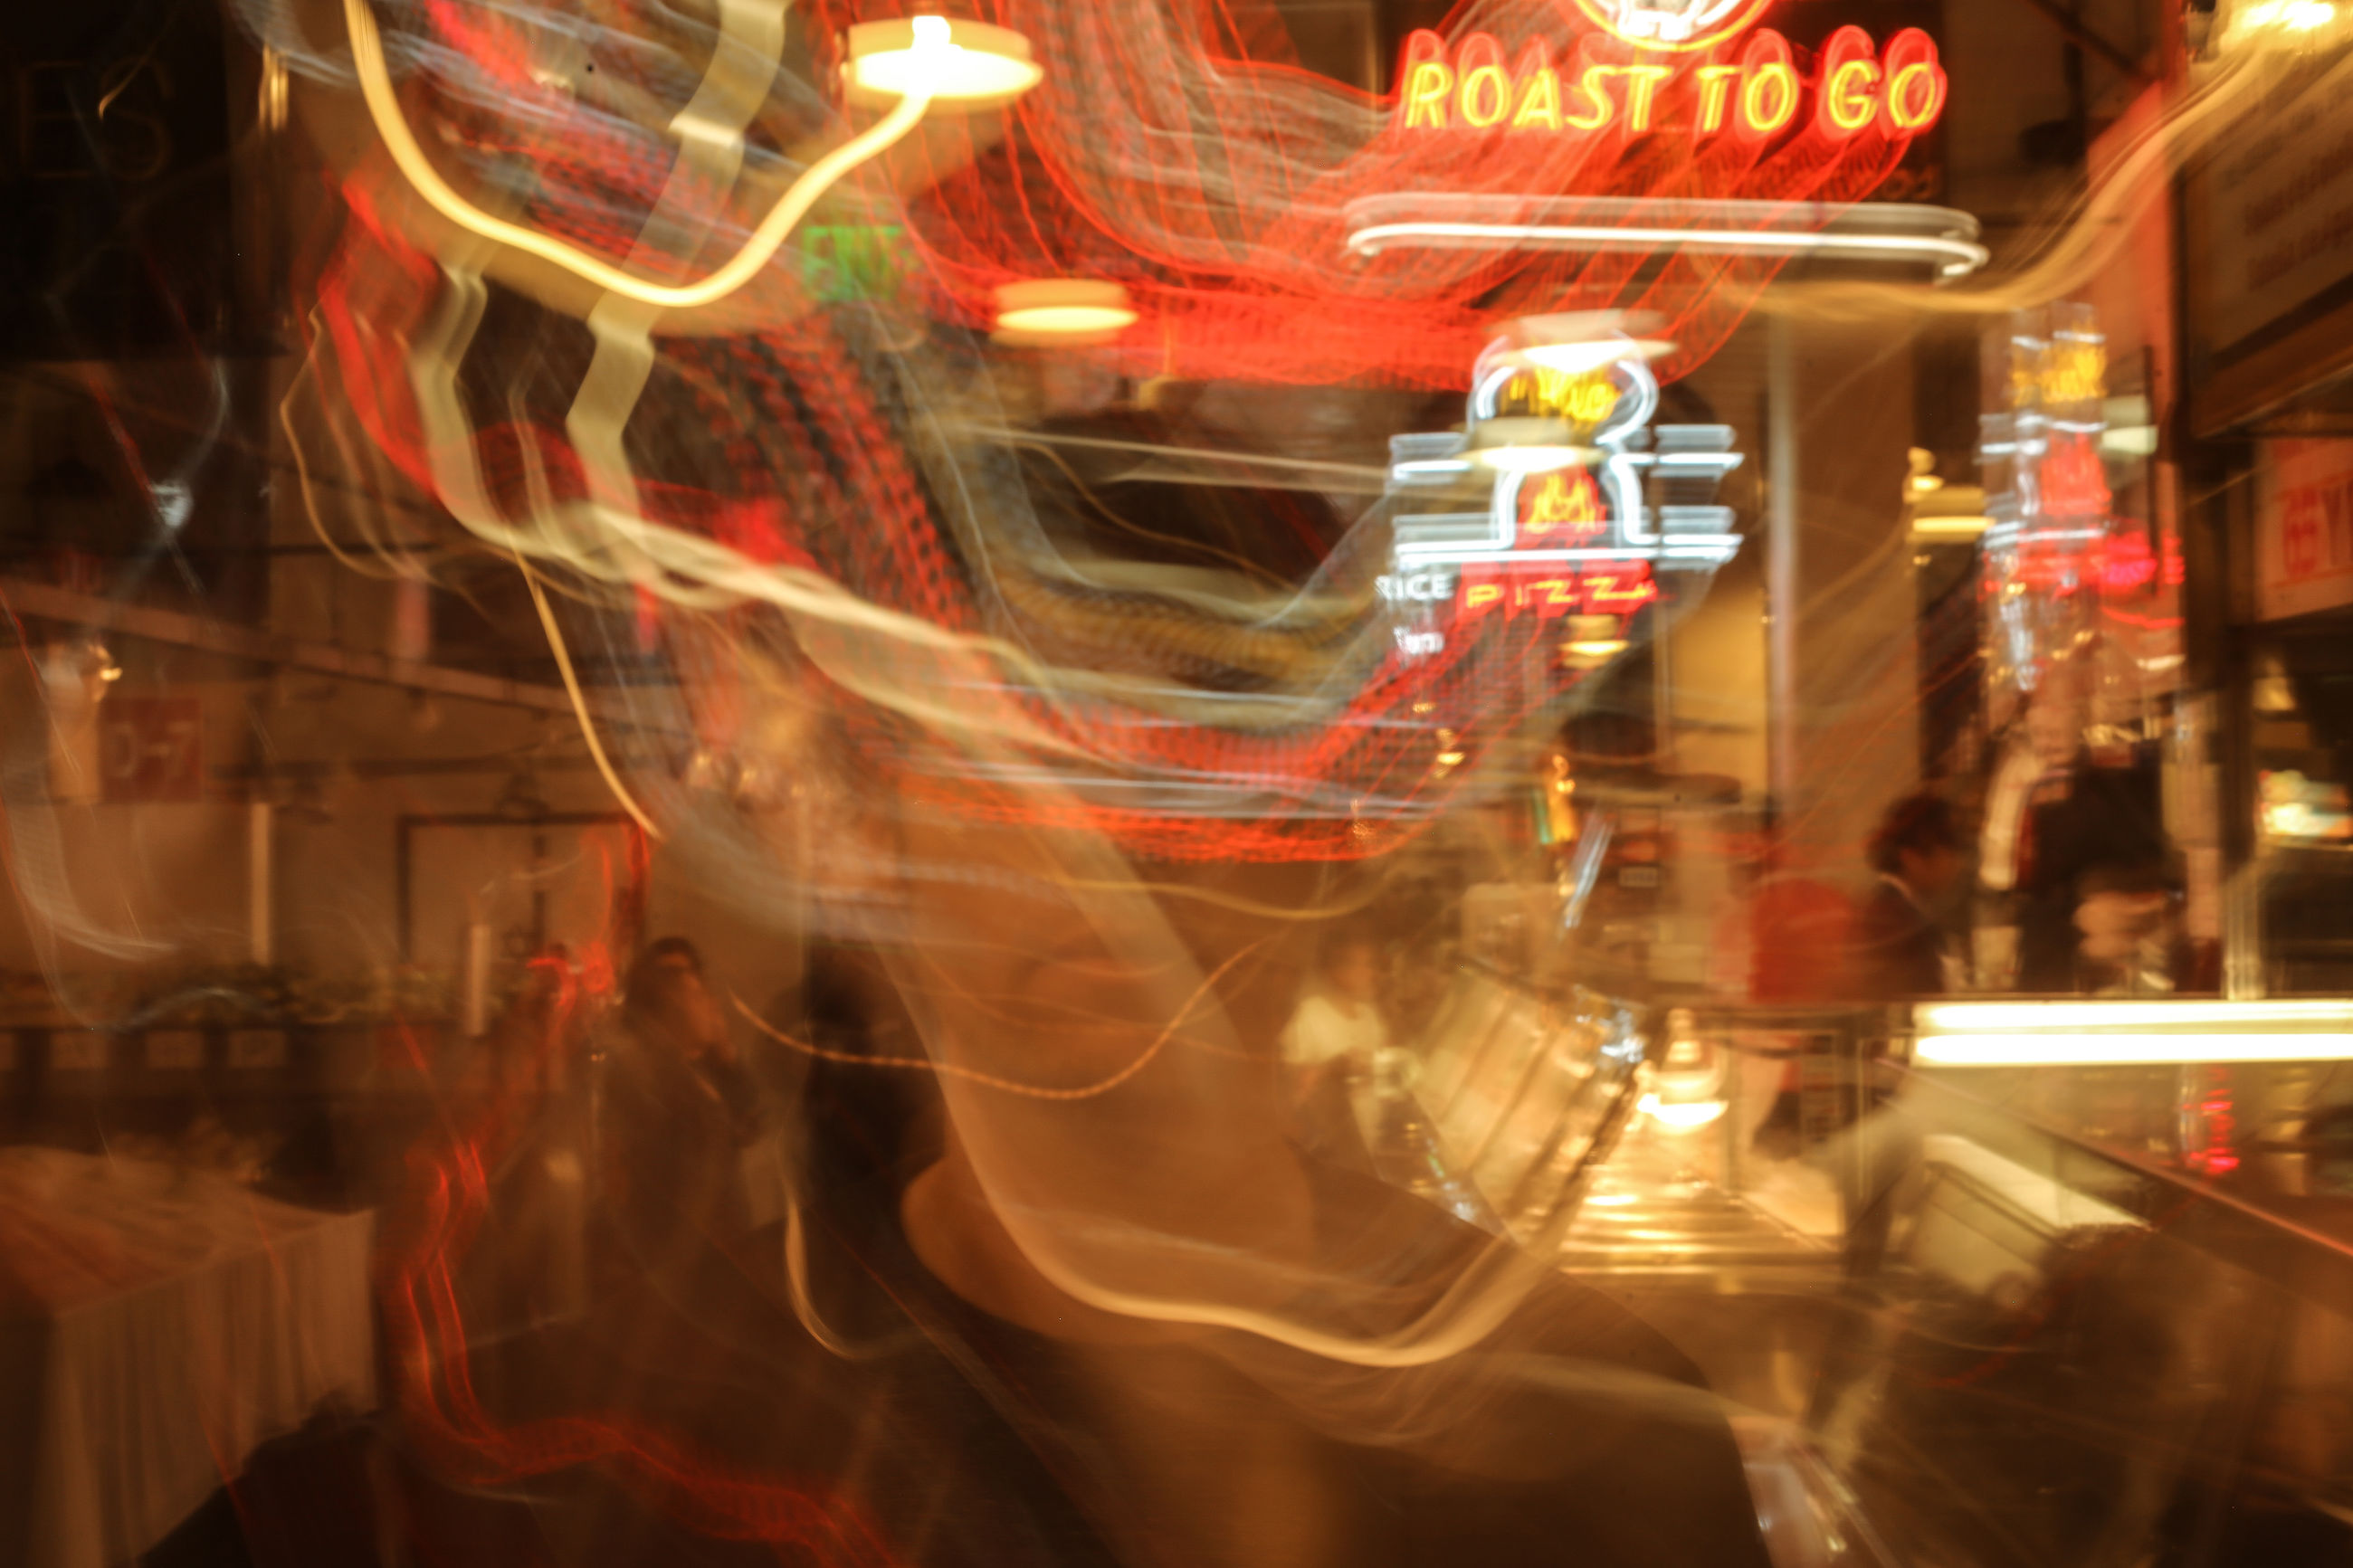 night, illuminated, blurred motion, motion, long exposure, arts culture and entertainment, carousel, speed, amusement park ride, nightlife, amusement park, real people, outdoors, neon, close-up